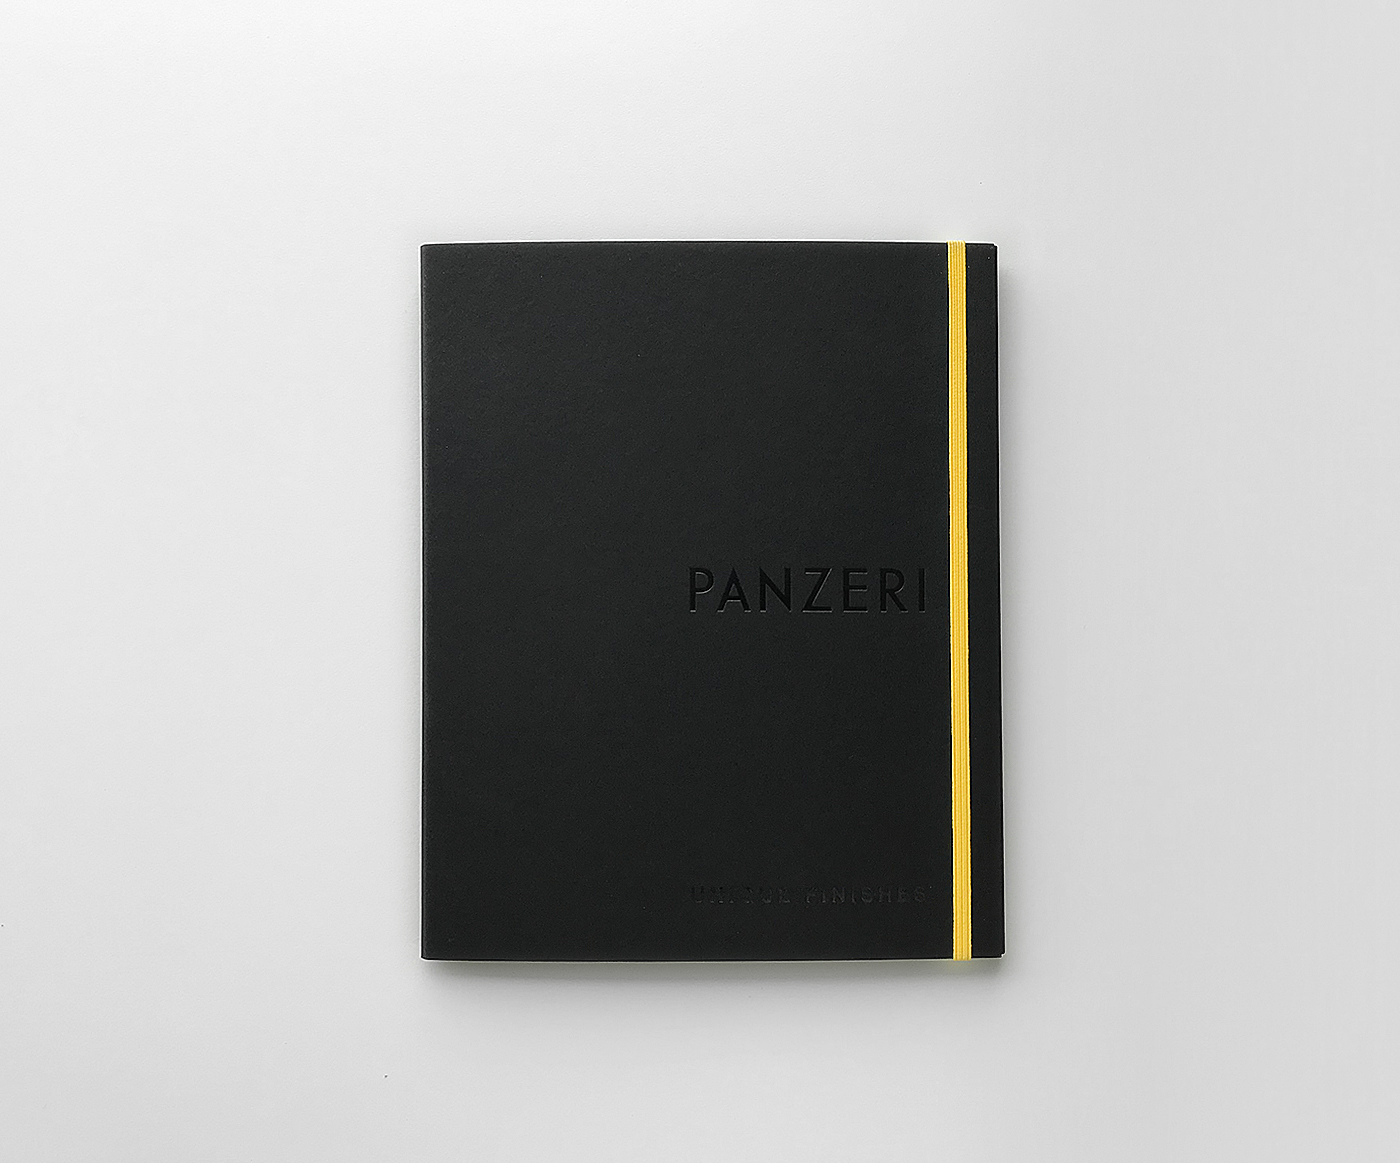 PANZERI - Unique Finishes